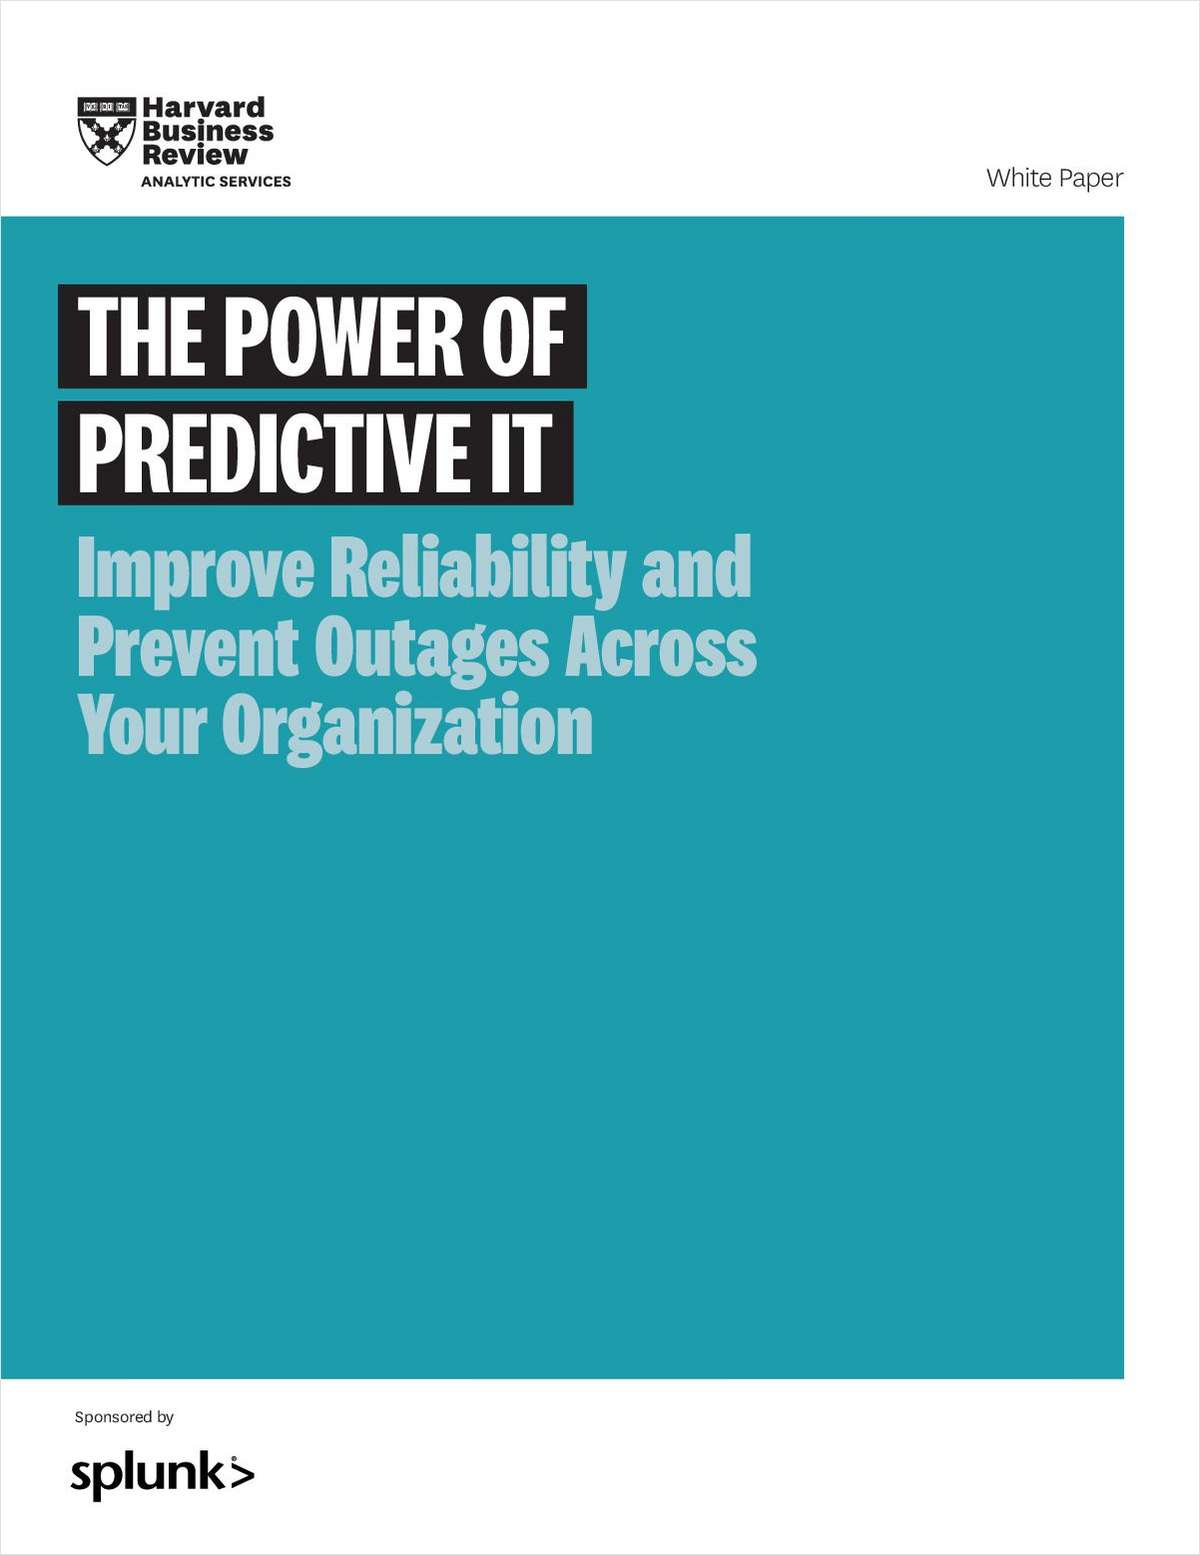 The Power of Predictive IT: Improve Reliability and Prevent Outages Across Your Organization